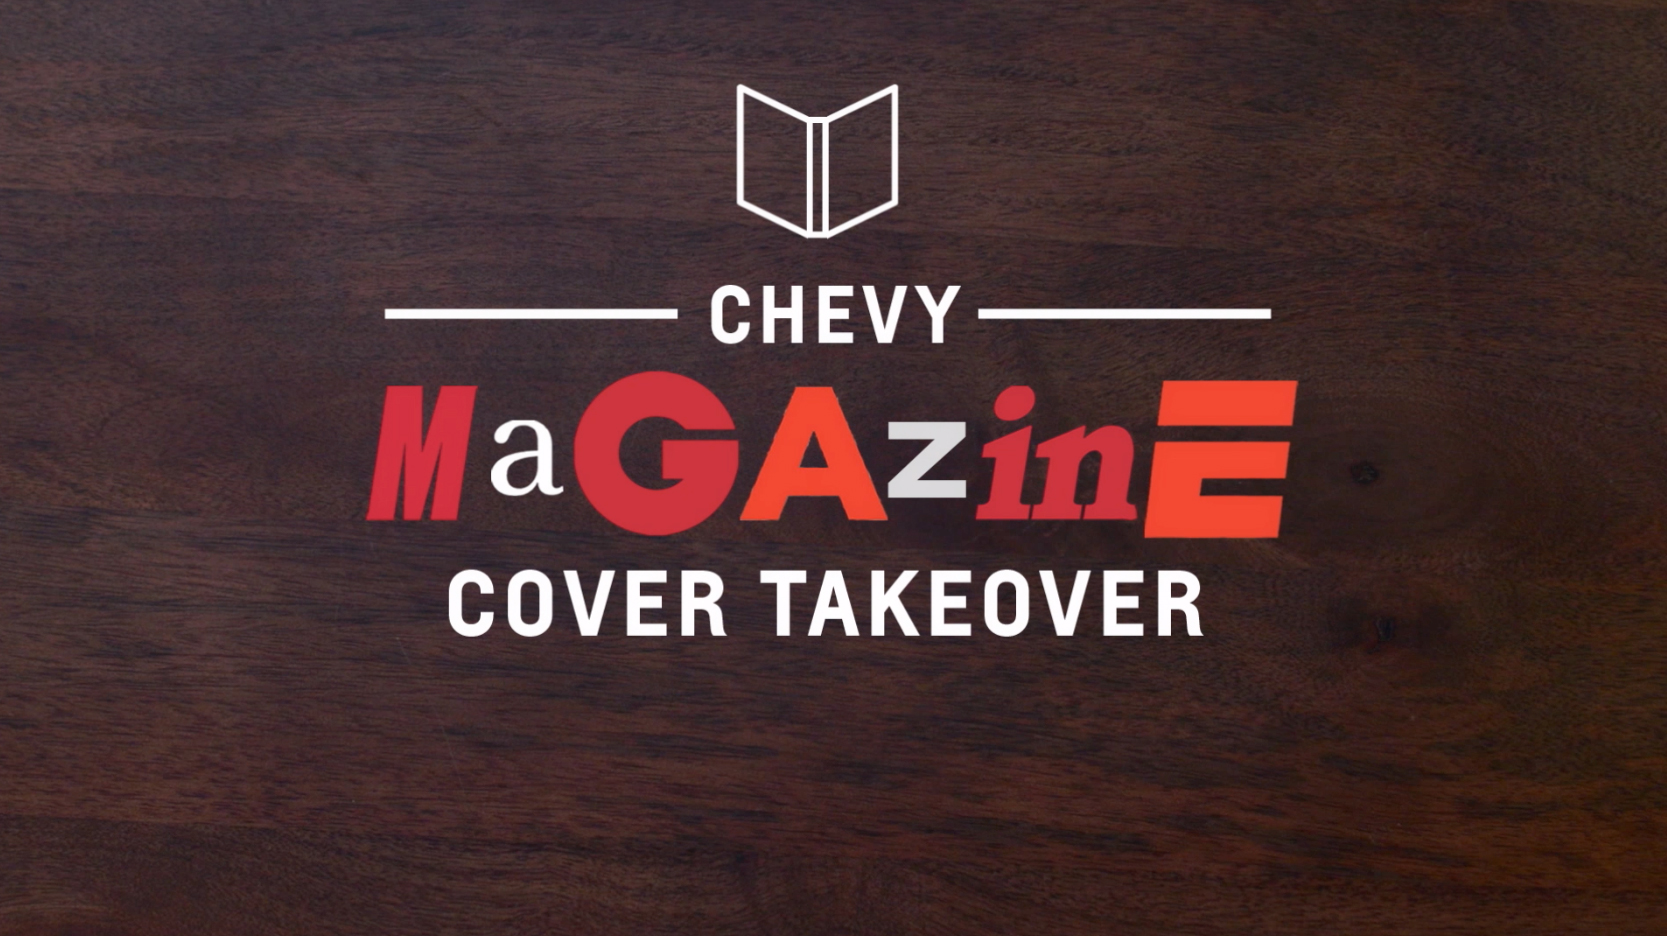 Chevy Magazine Cover Takeover